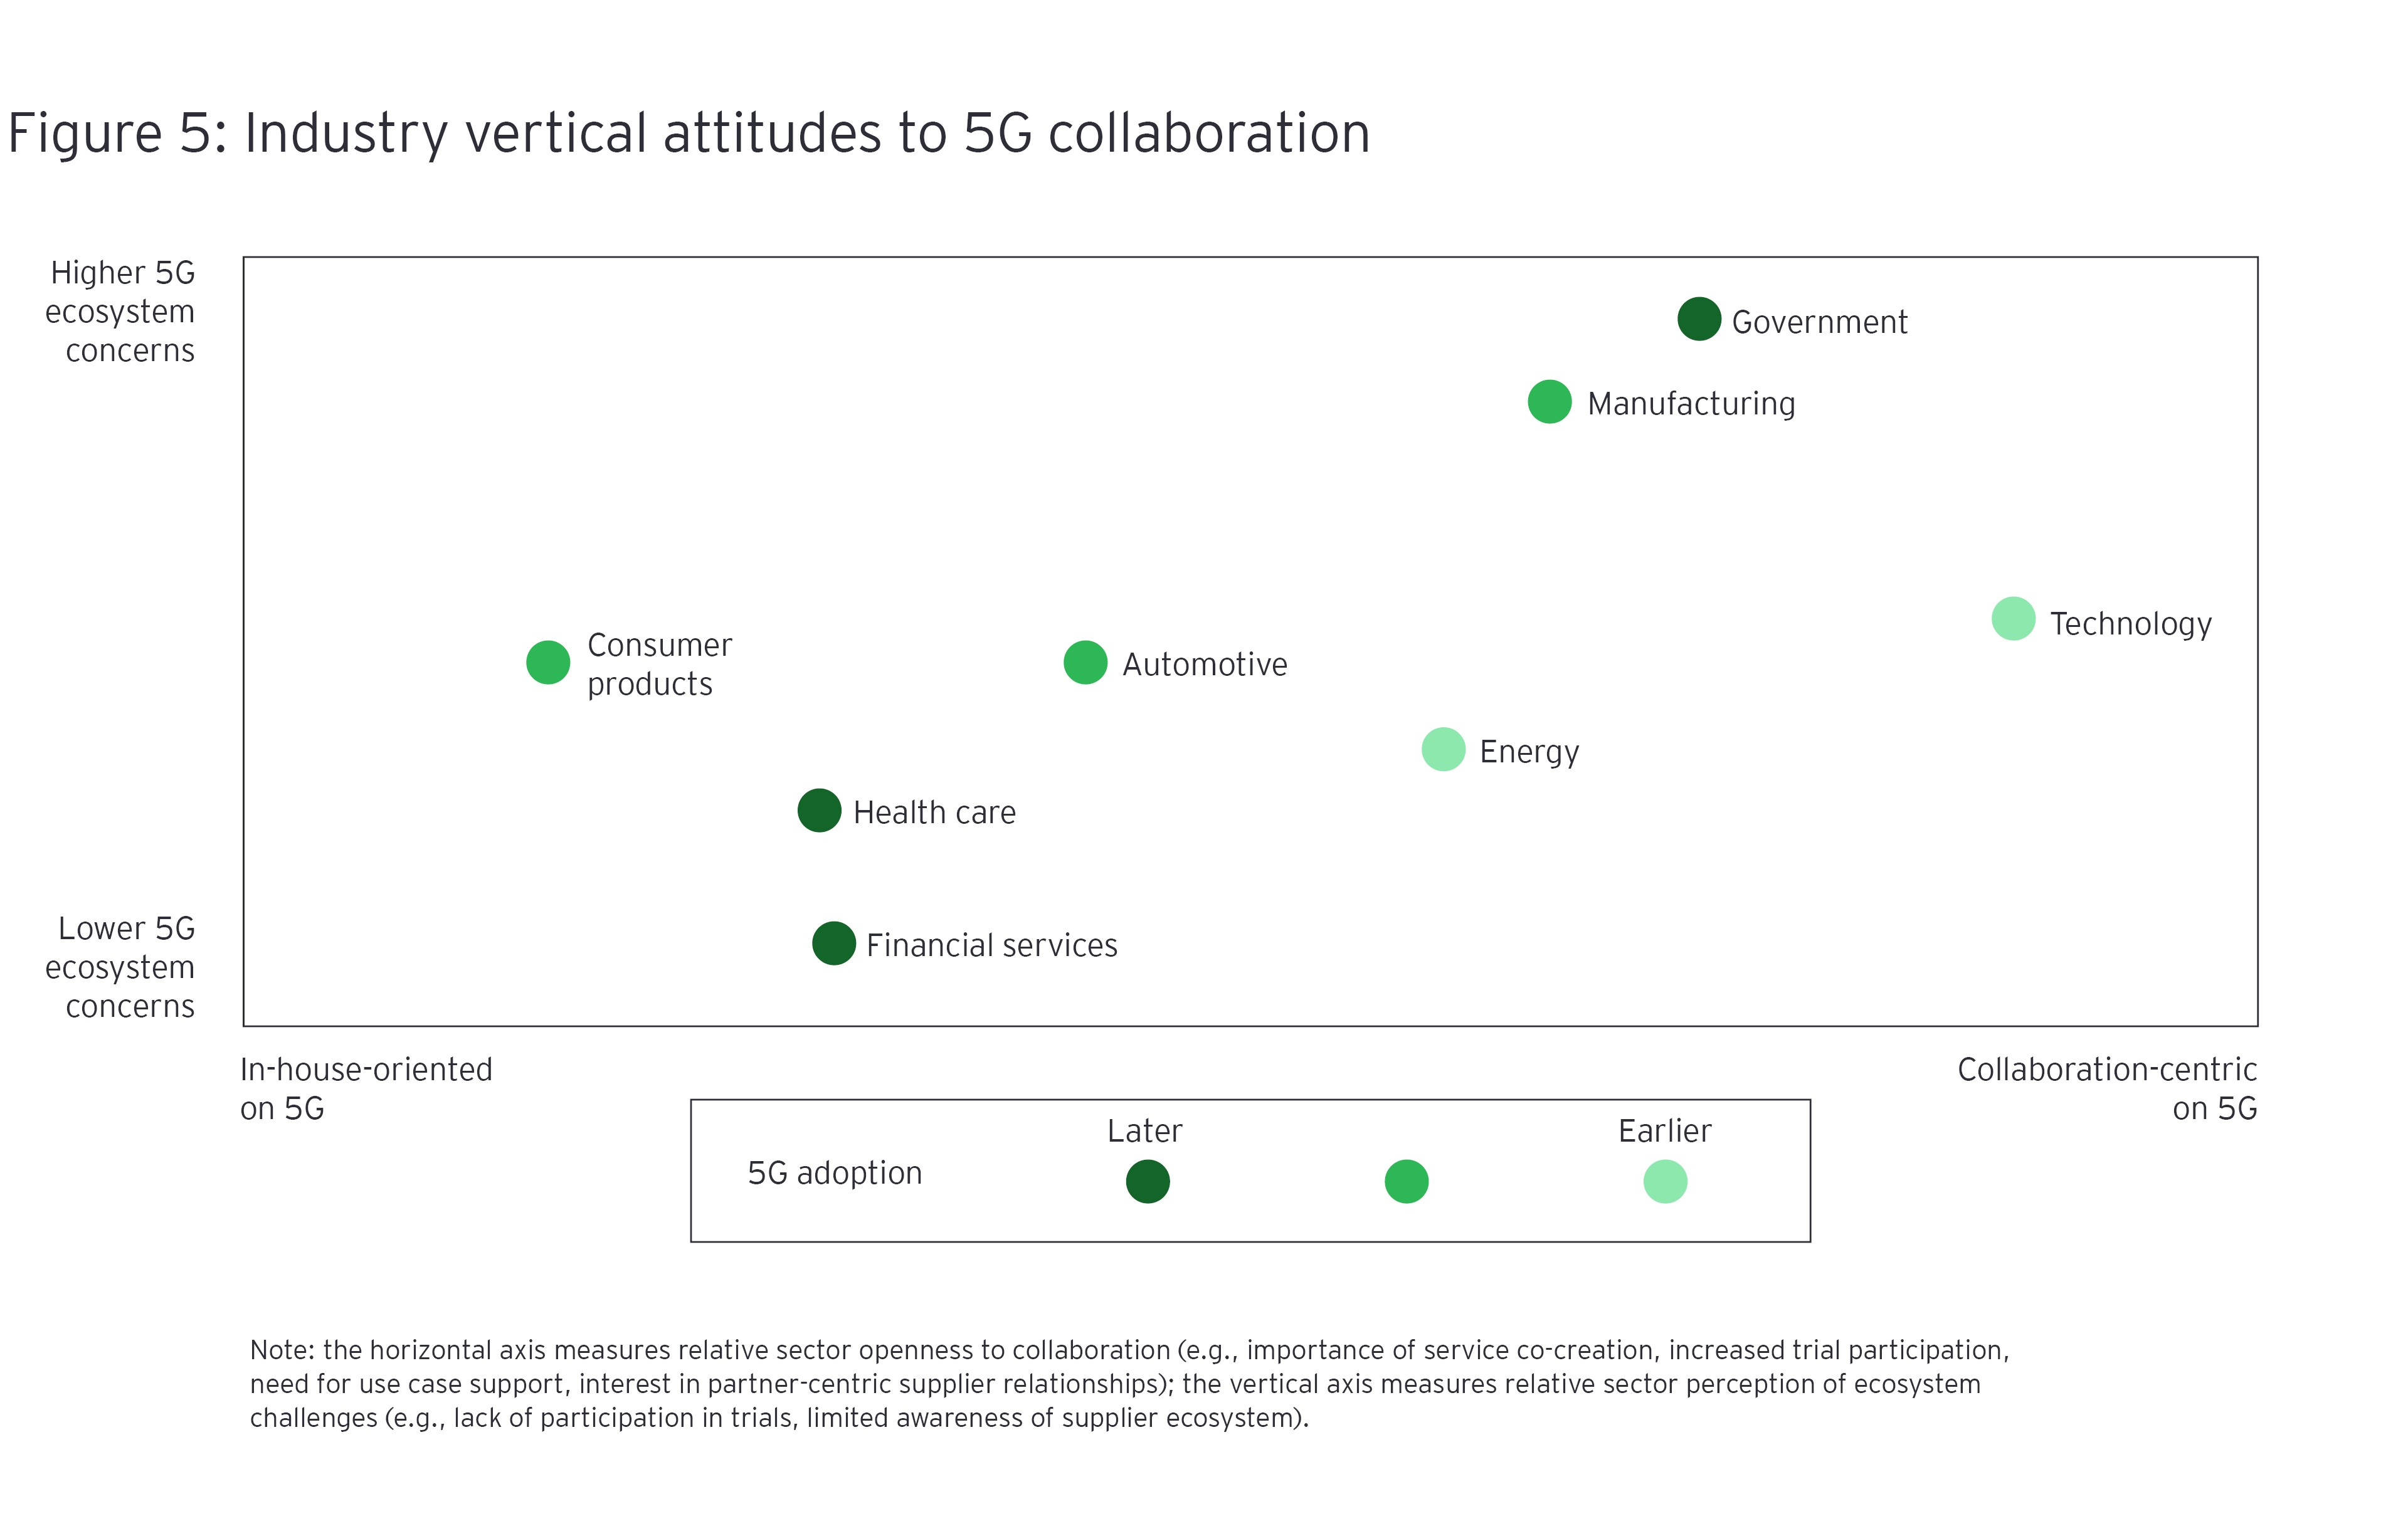 Industry vertical attitudes to 5G collaboration